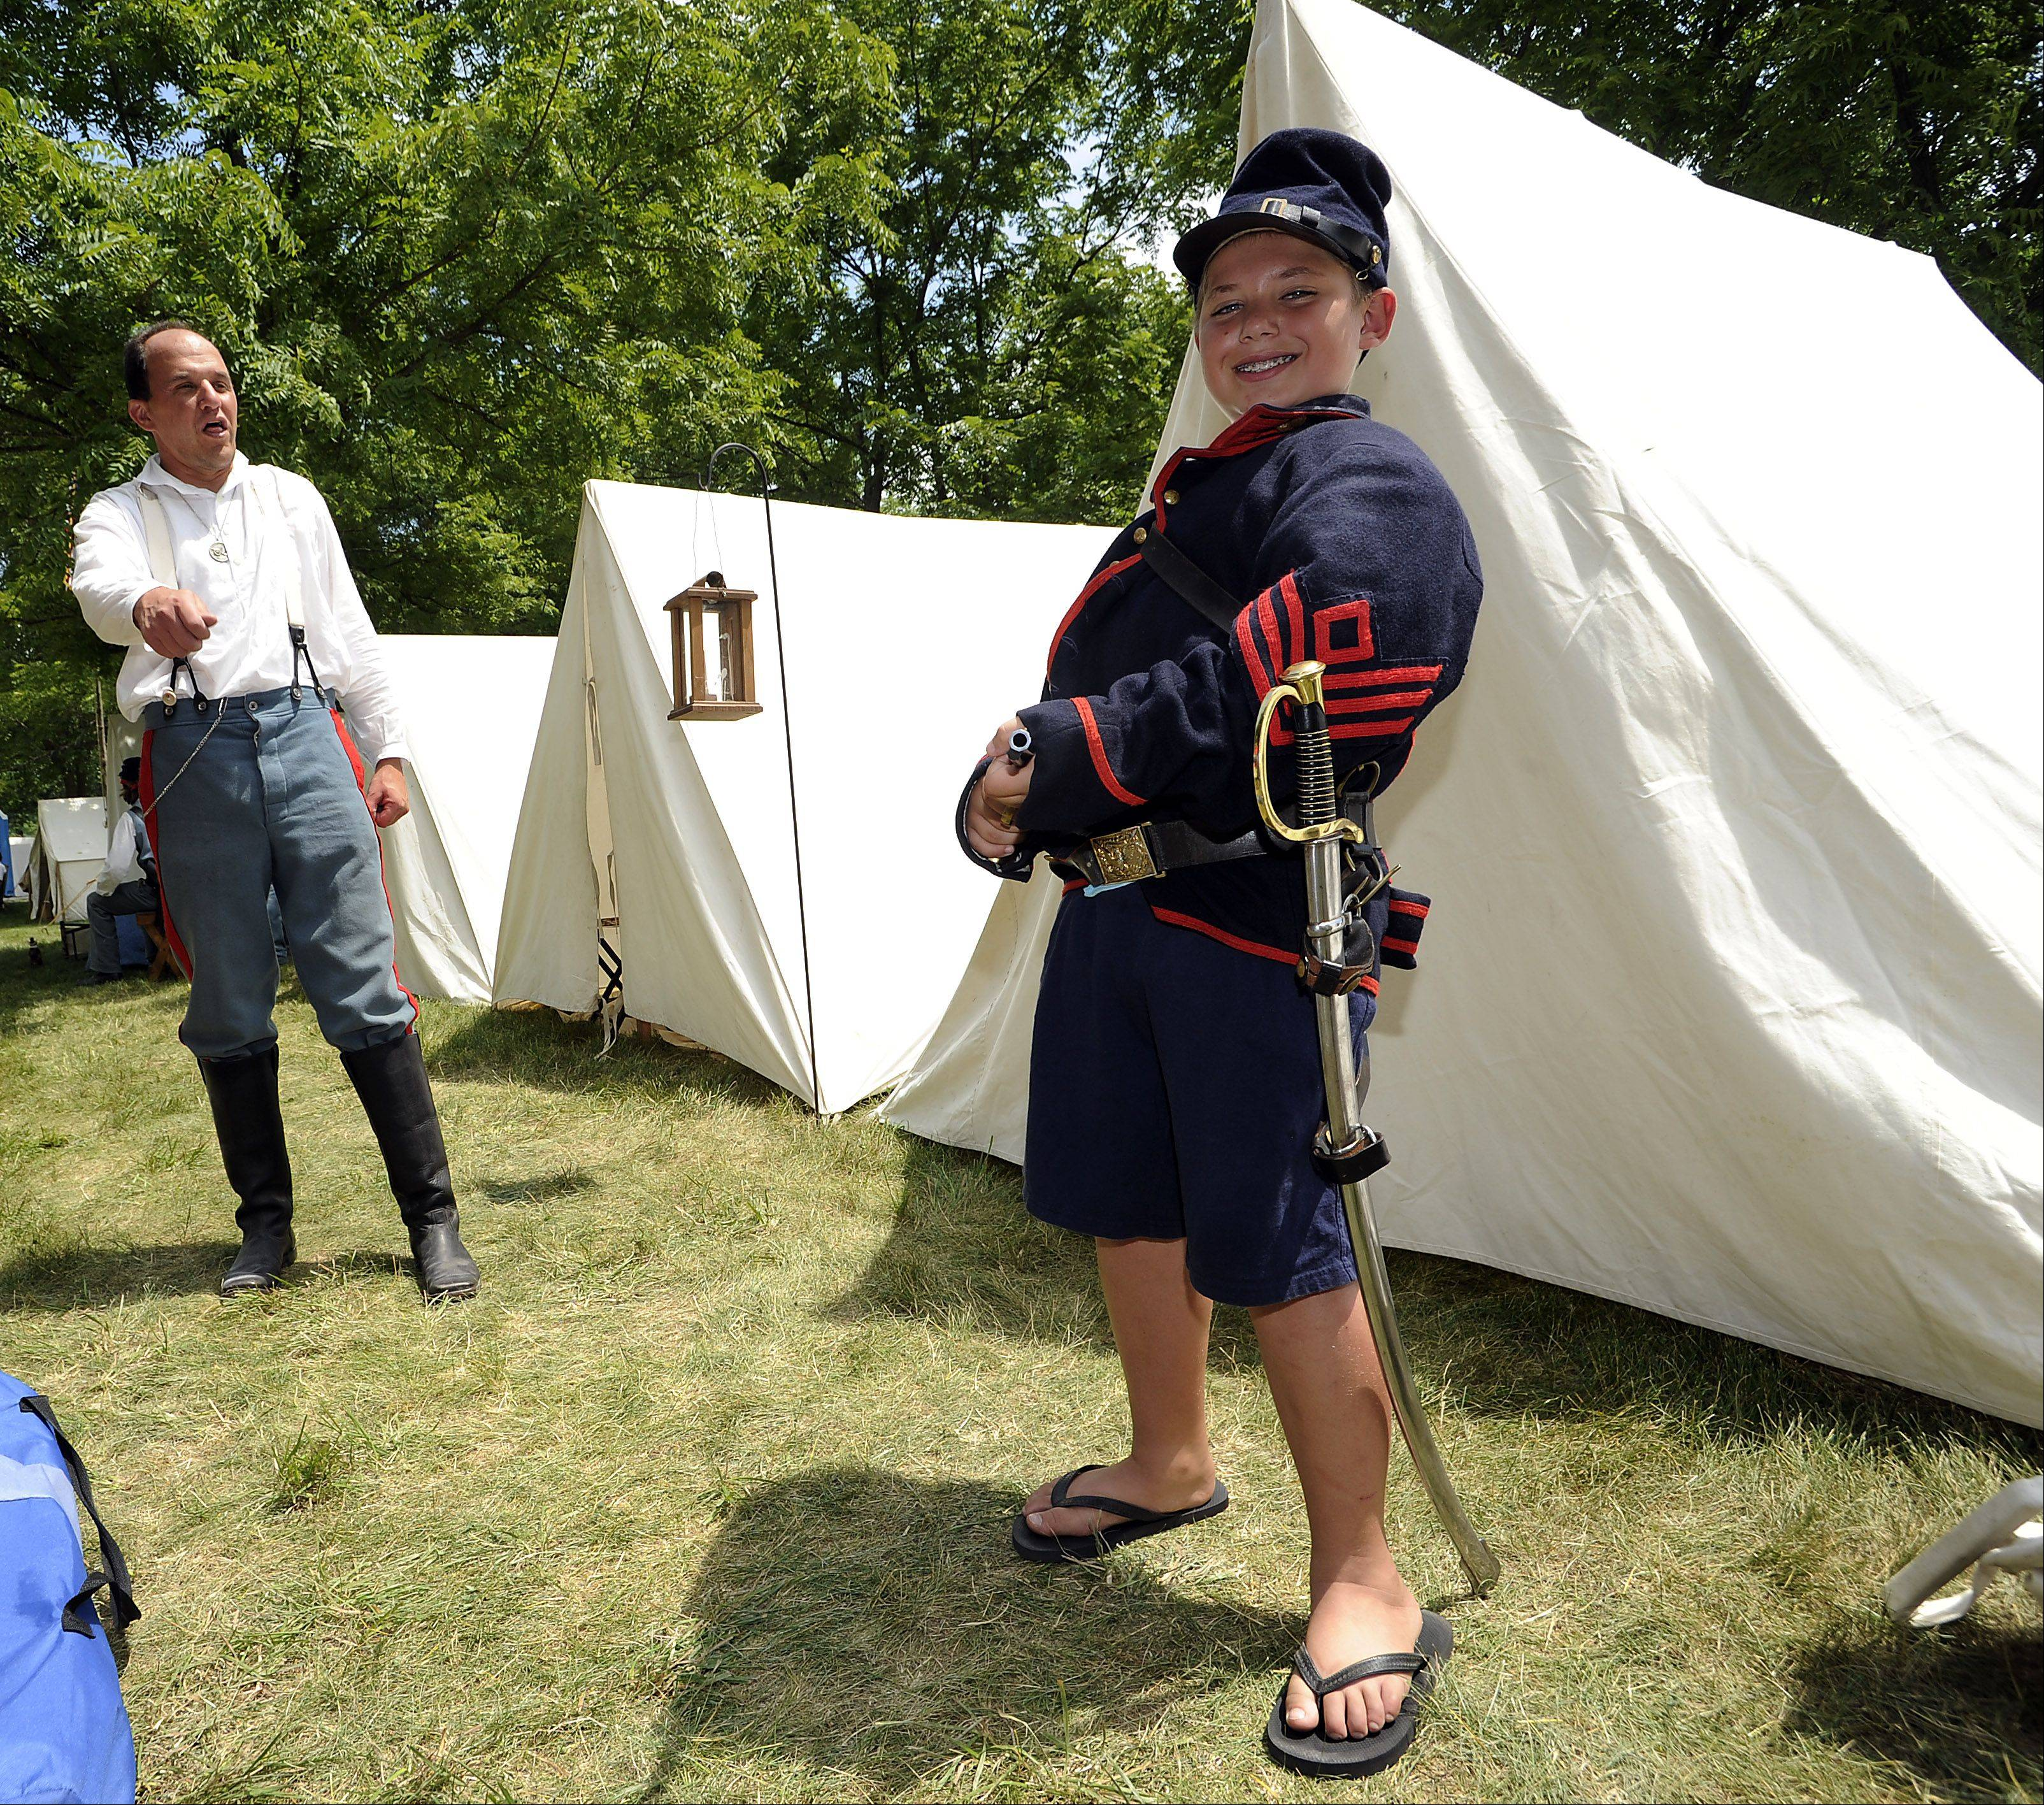 Elk Grove Village's Mike Gregory dresses up Eric Socha,11, of Itasca letting him experience first hand how hot and heavy the wool uniforms are on a hot summer day during the first day at the 20th annual Civil War days in the Lake County Forest Preserve on Saturday.